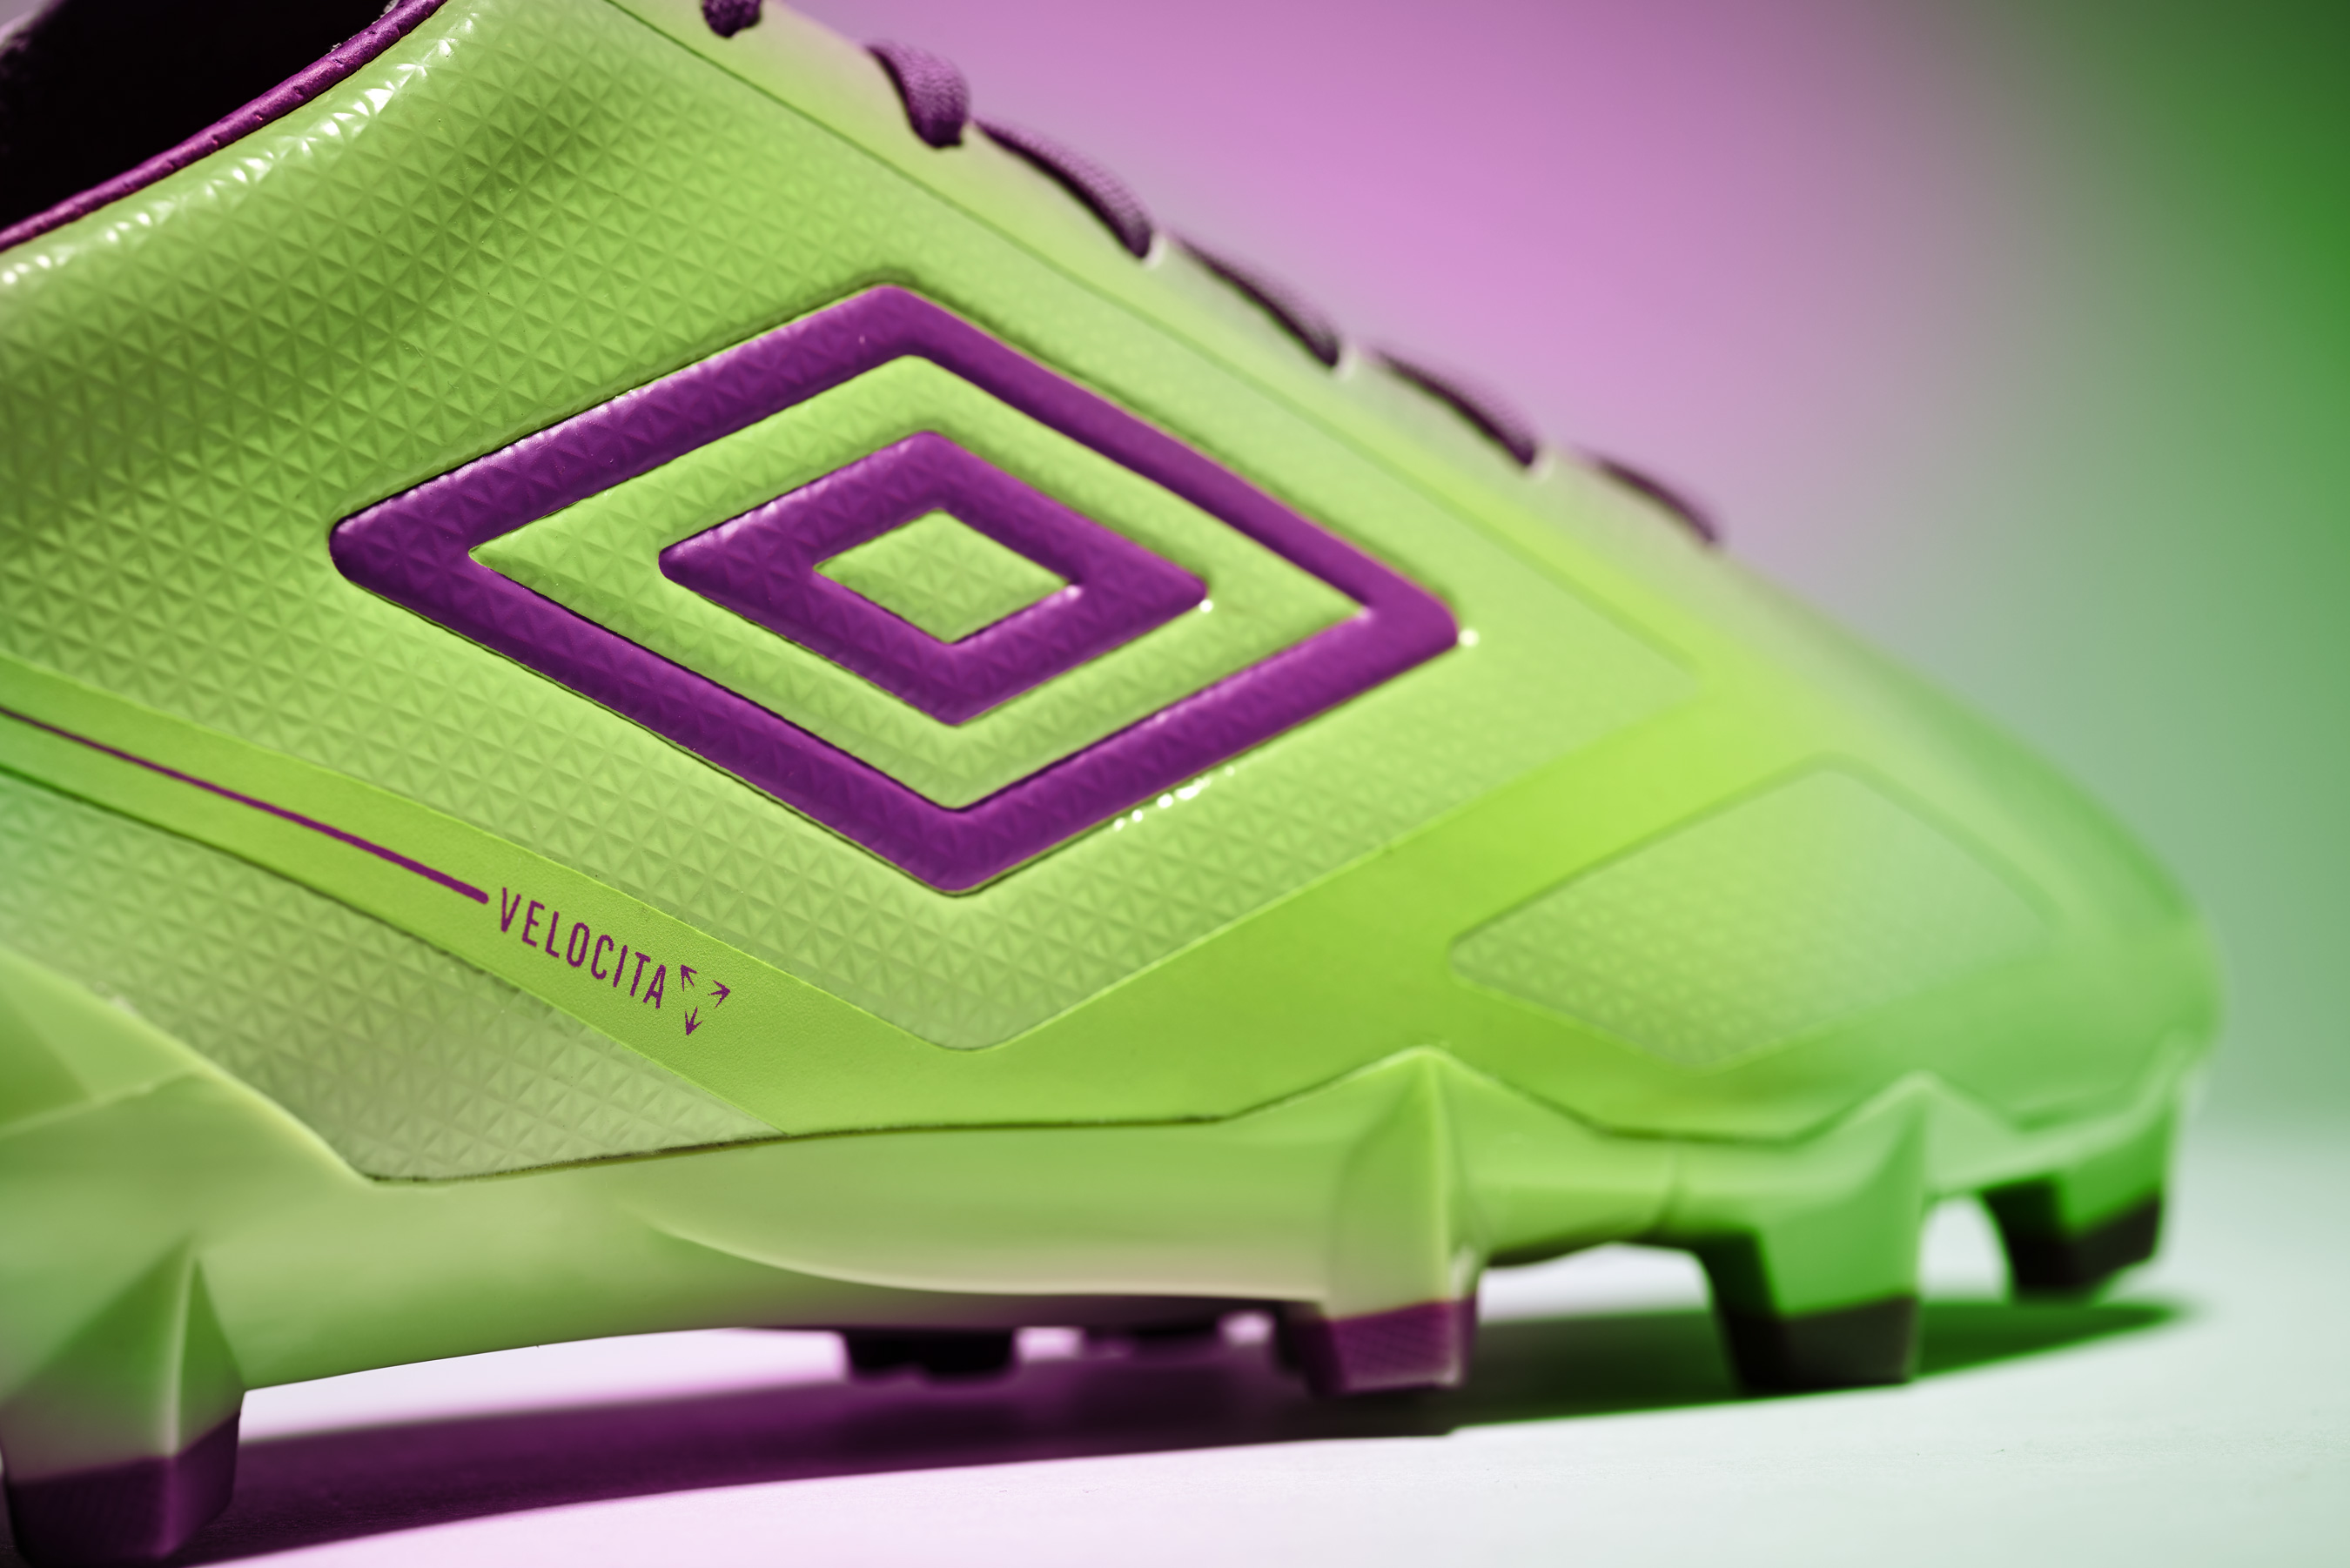 ms_umbro_aw16_velocita_purple_colour__015